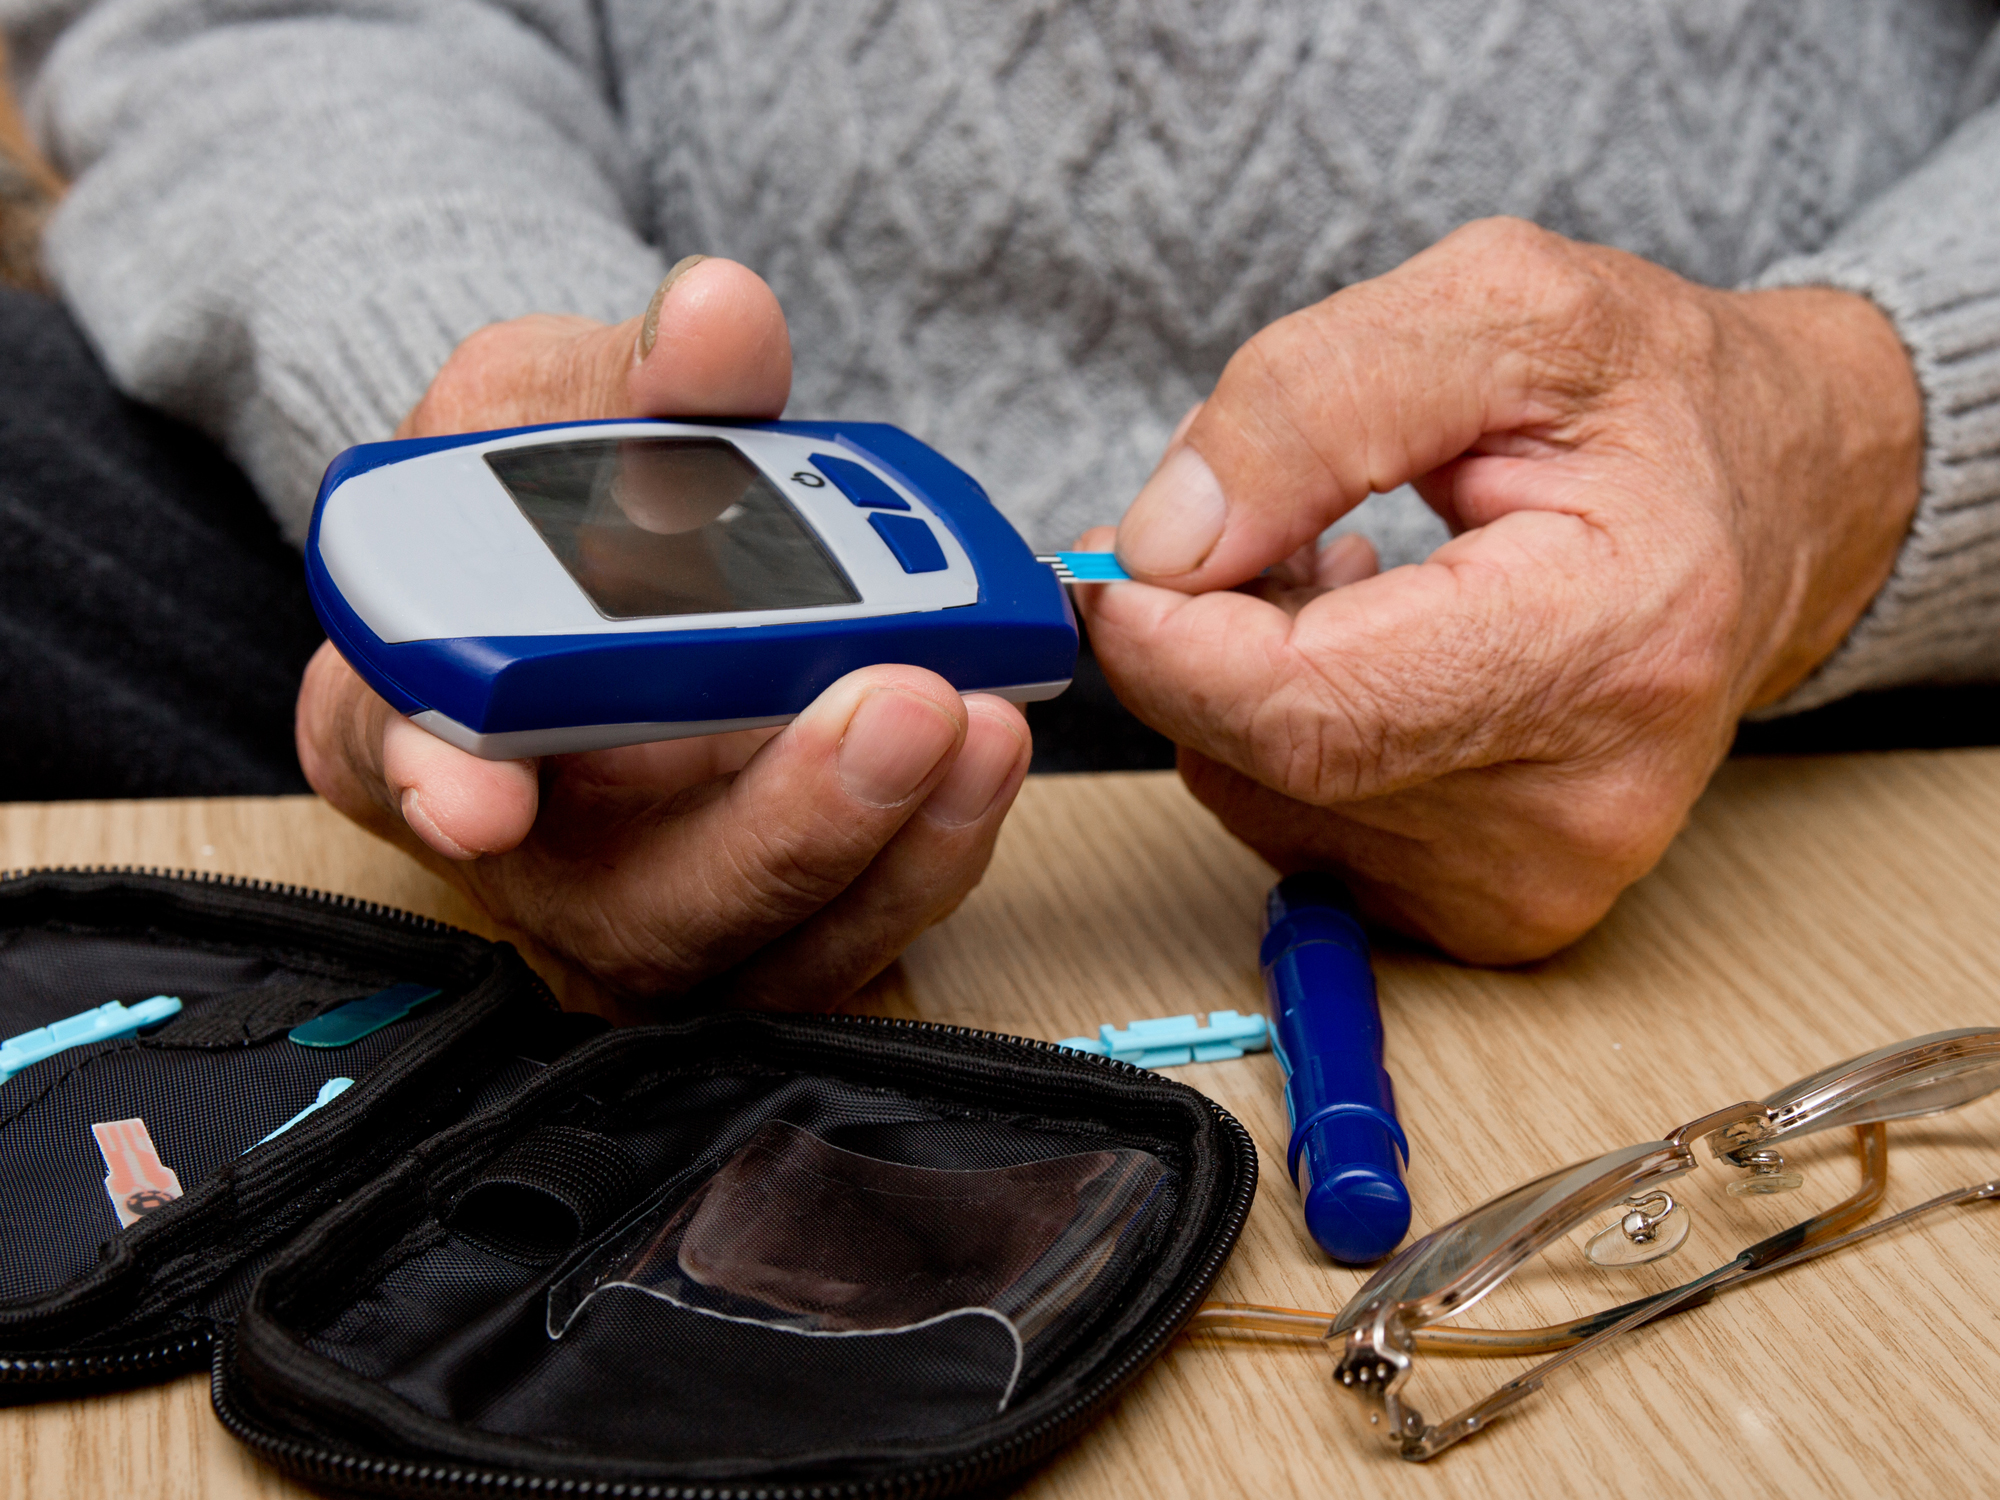 Why Alzheimer's may be late-stage type 2 diabetes